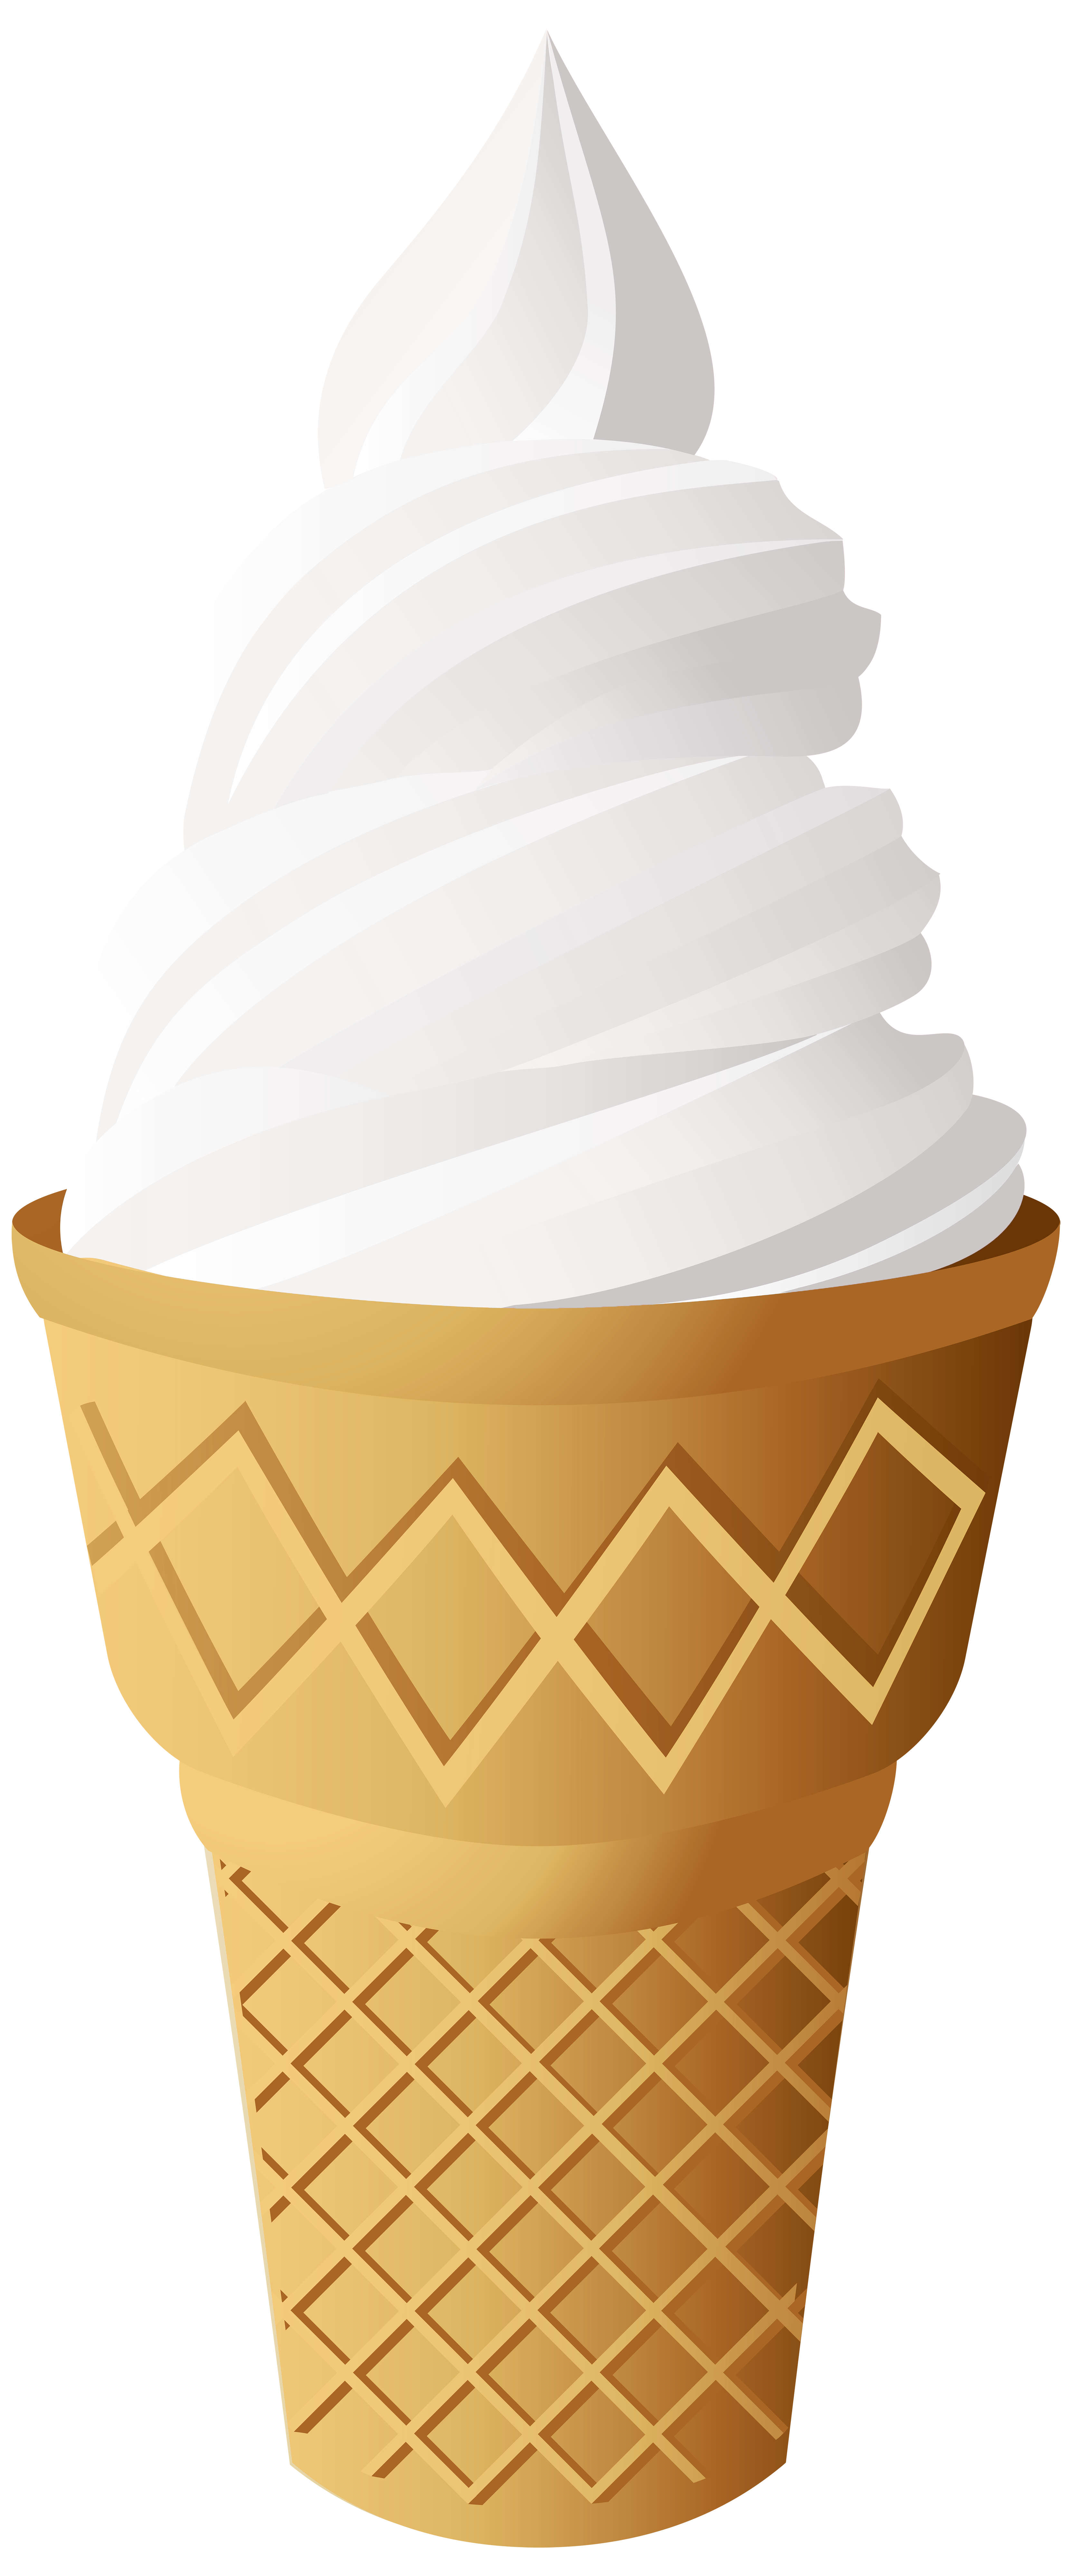 Vanilla ice cream cone. Milkshake clipart animated